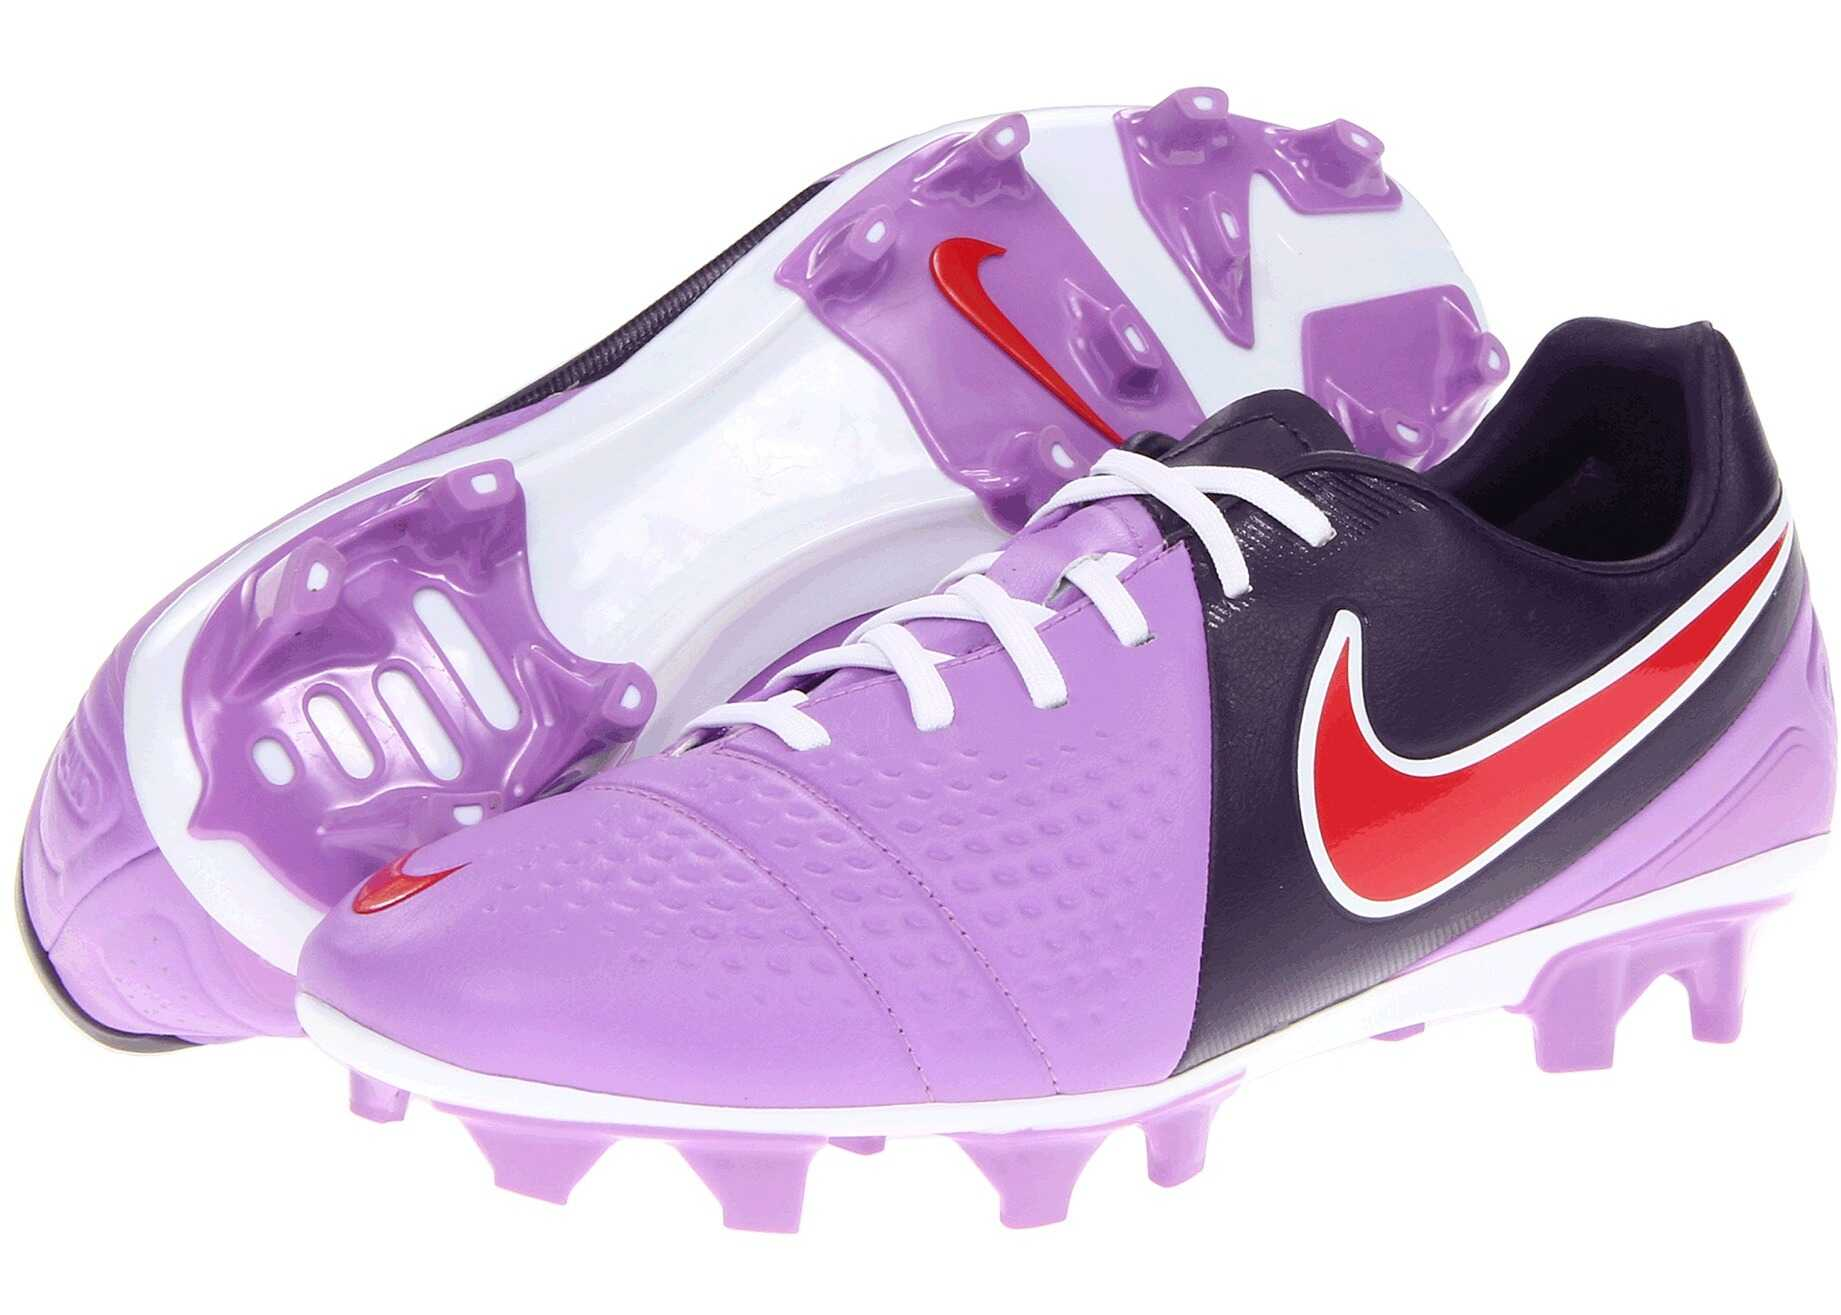 Nike Ctr360 Trequartista Iii Fg* Atomic Purple/grand Purple/hyper Red